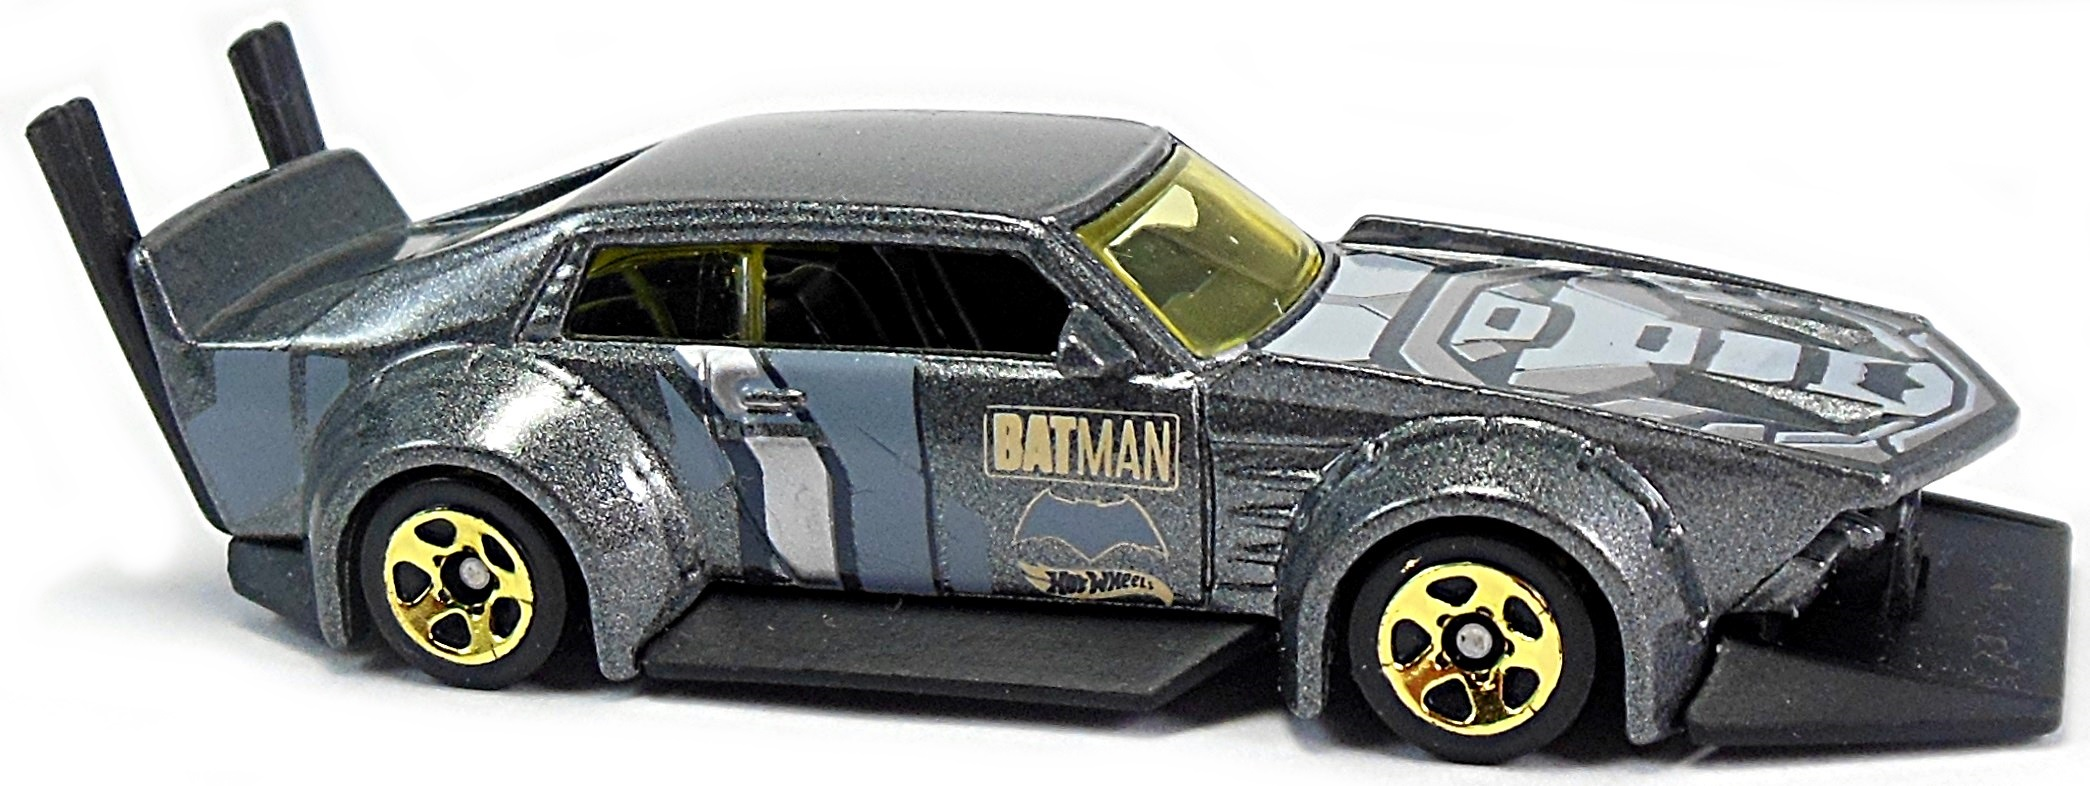 Rims Vs Wheels >> 2016 DC Comics Batman vs. Superman | Hot Wheels Newsletter